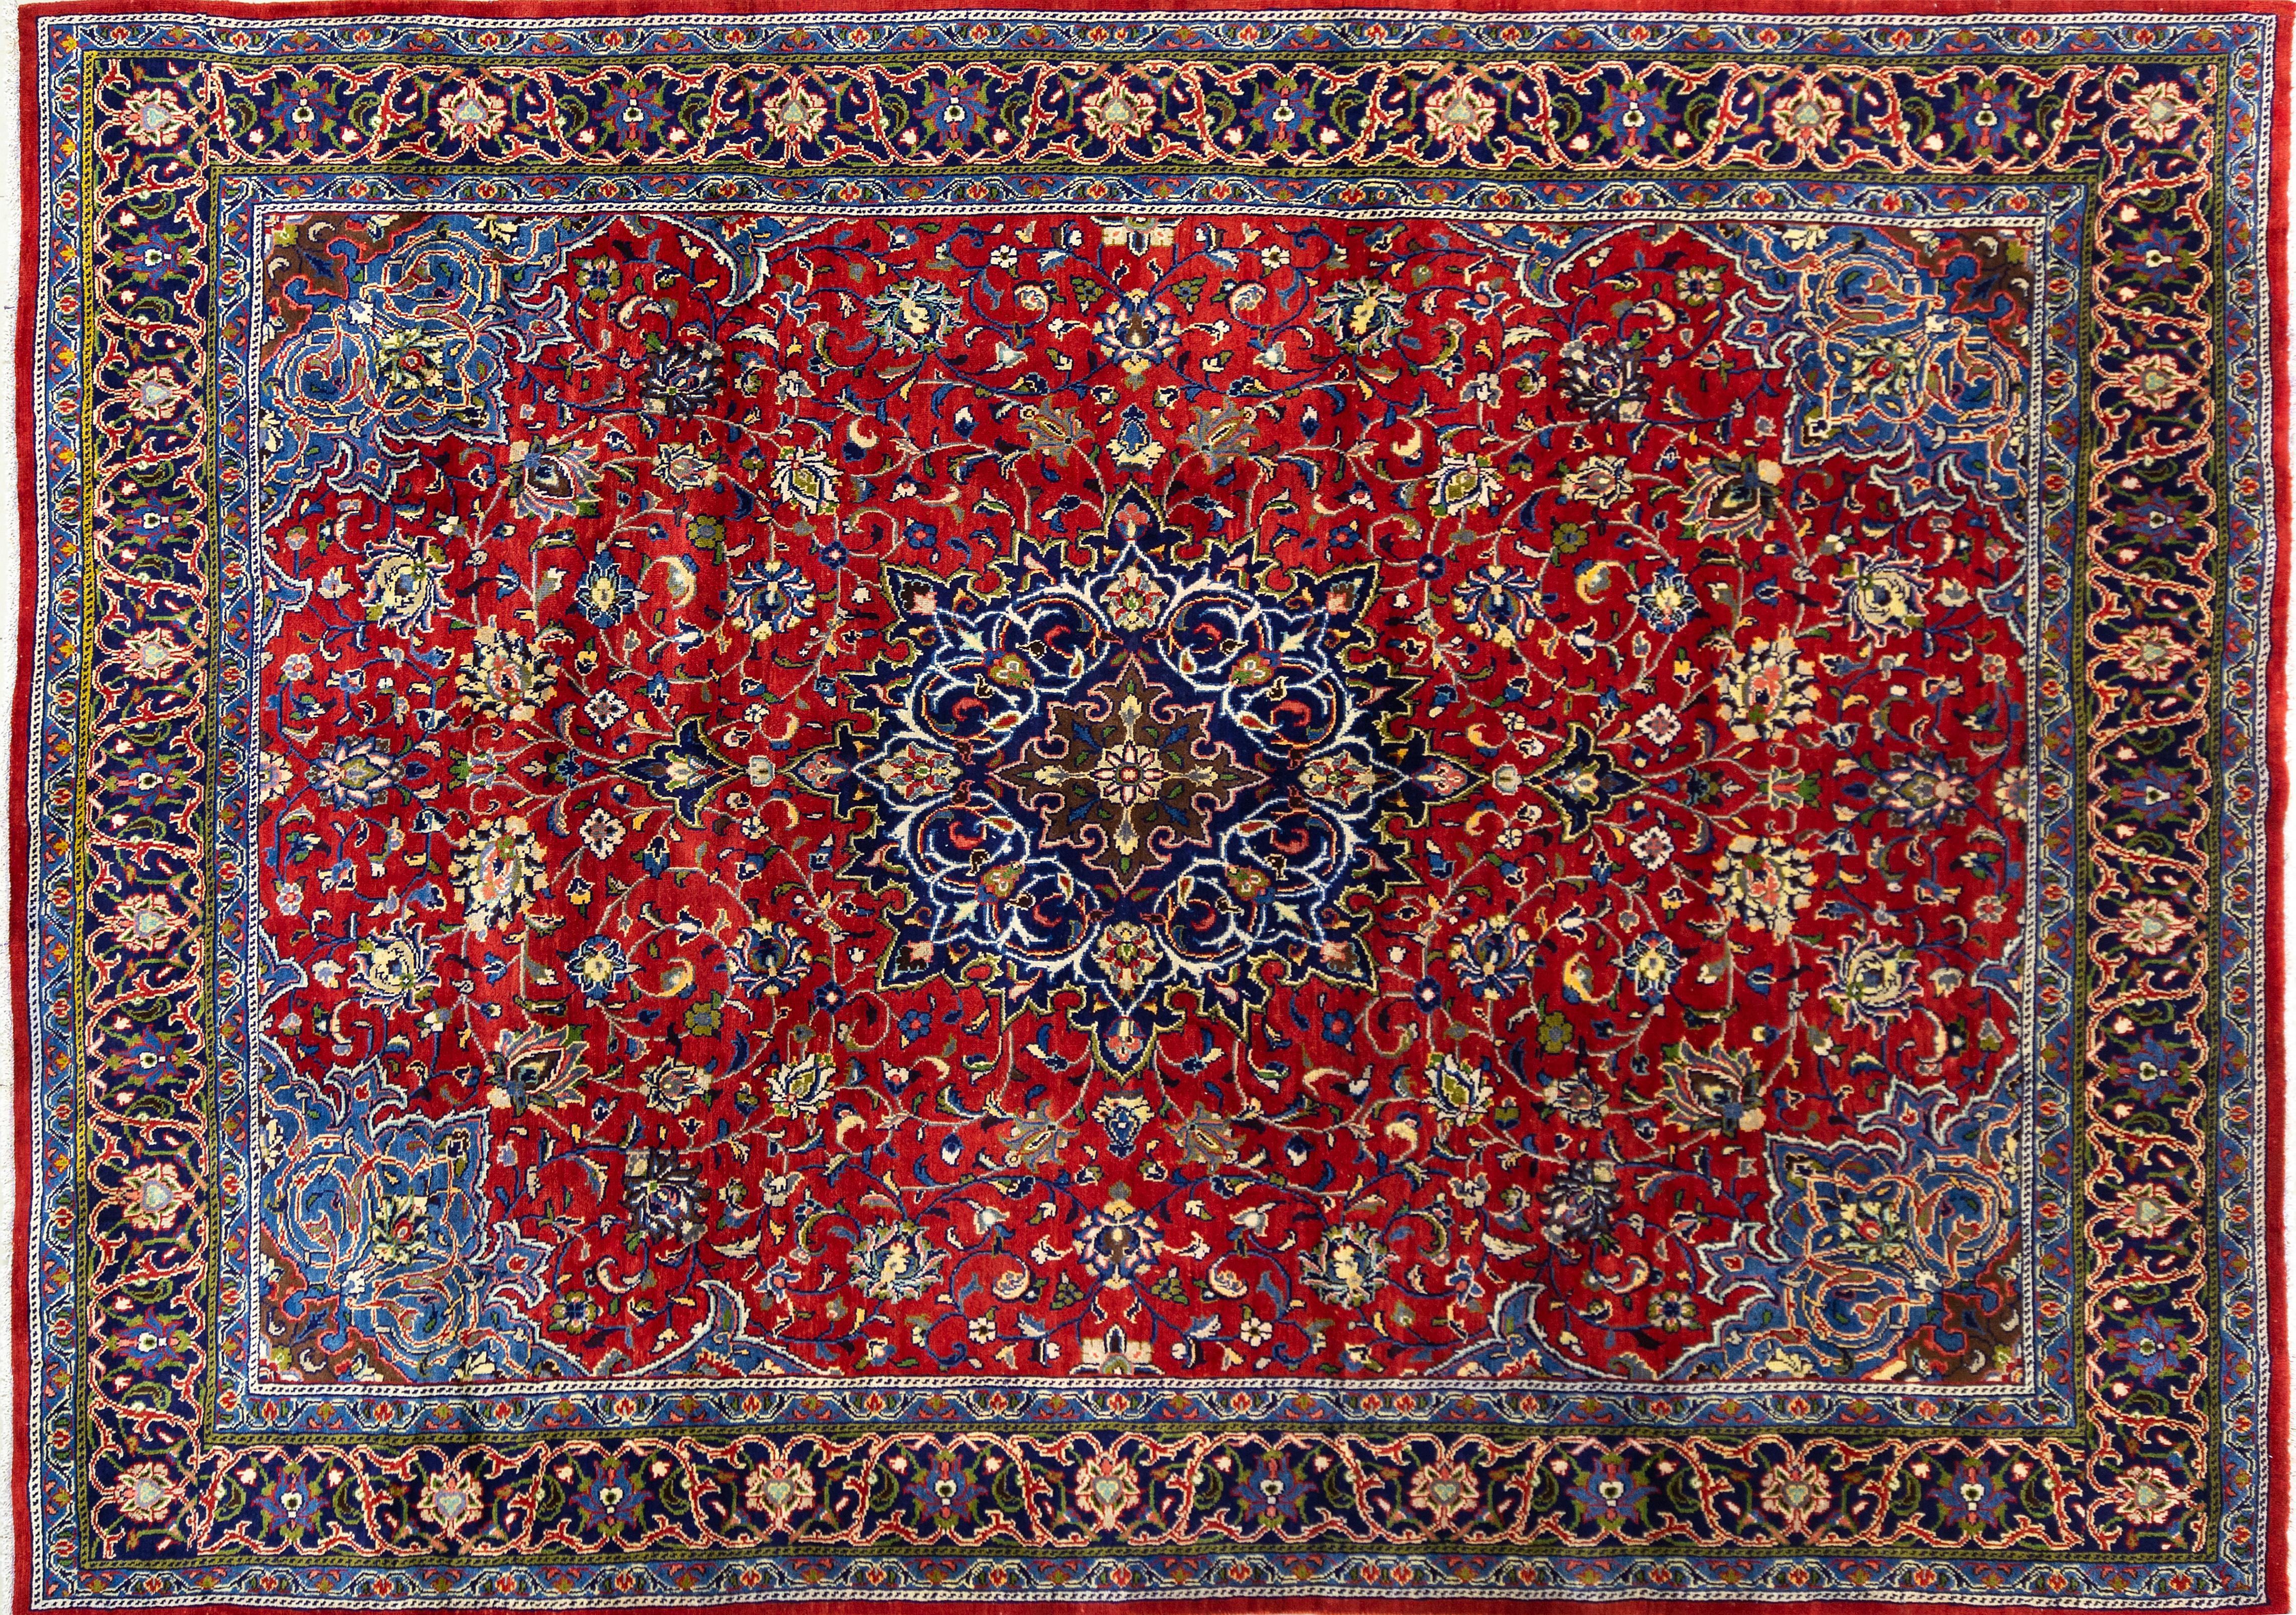 A Persian Hand Knotted Mahal Carpet, 405 x 290